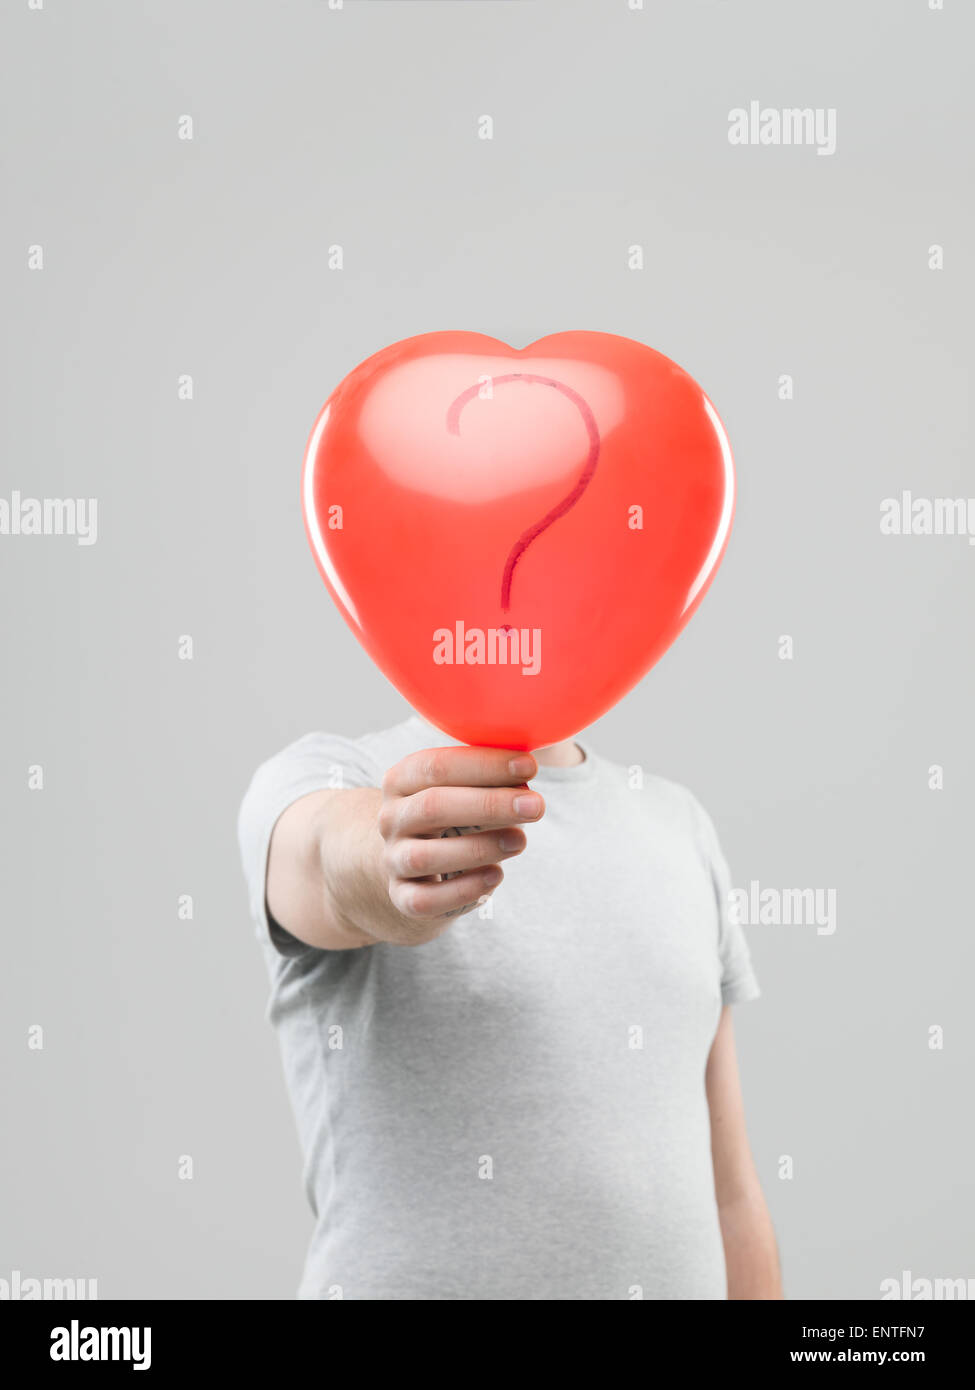 caucasian man holding heart shaped ballon with question mark in front of his head, against grey background - Stock Image